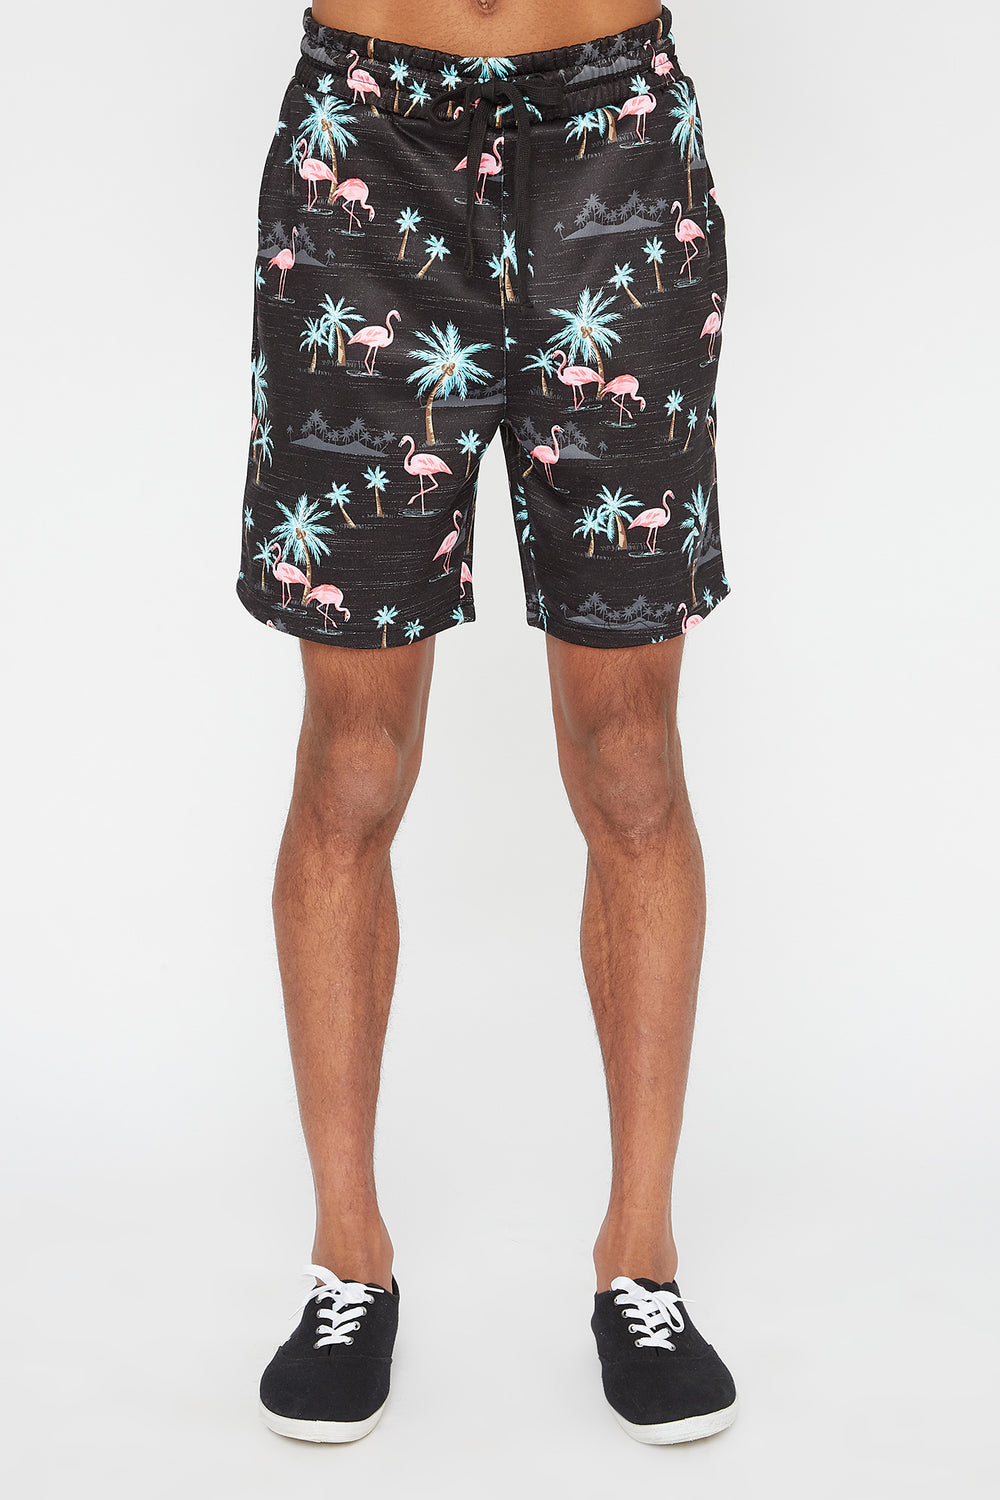 Short Flamants Roses Zoo York Homme Gris Noir